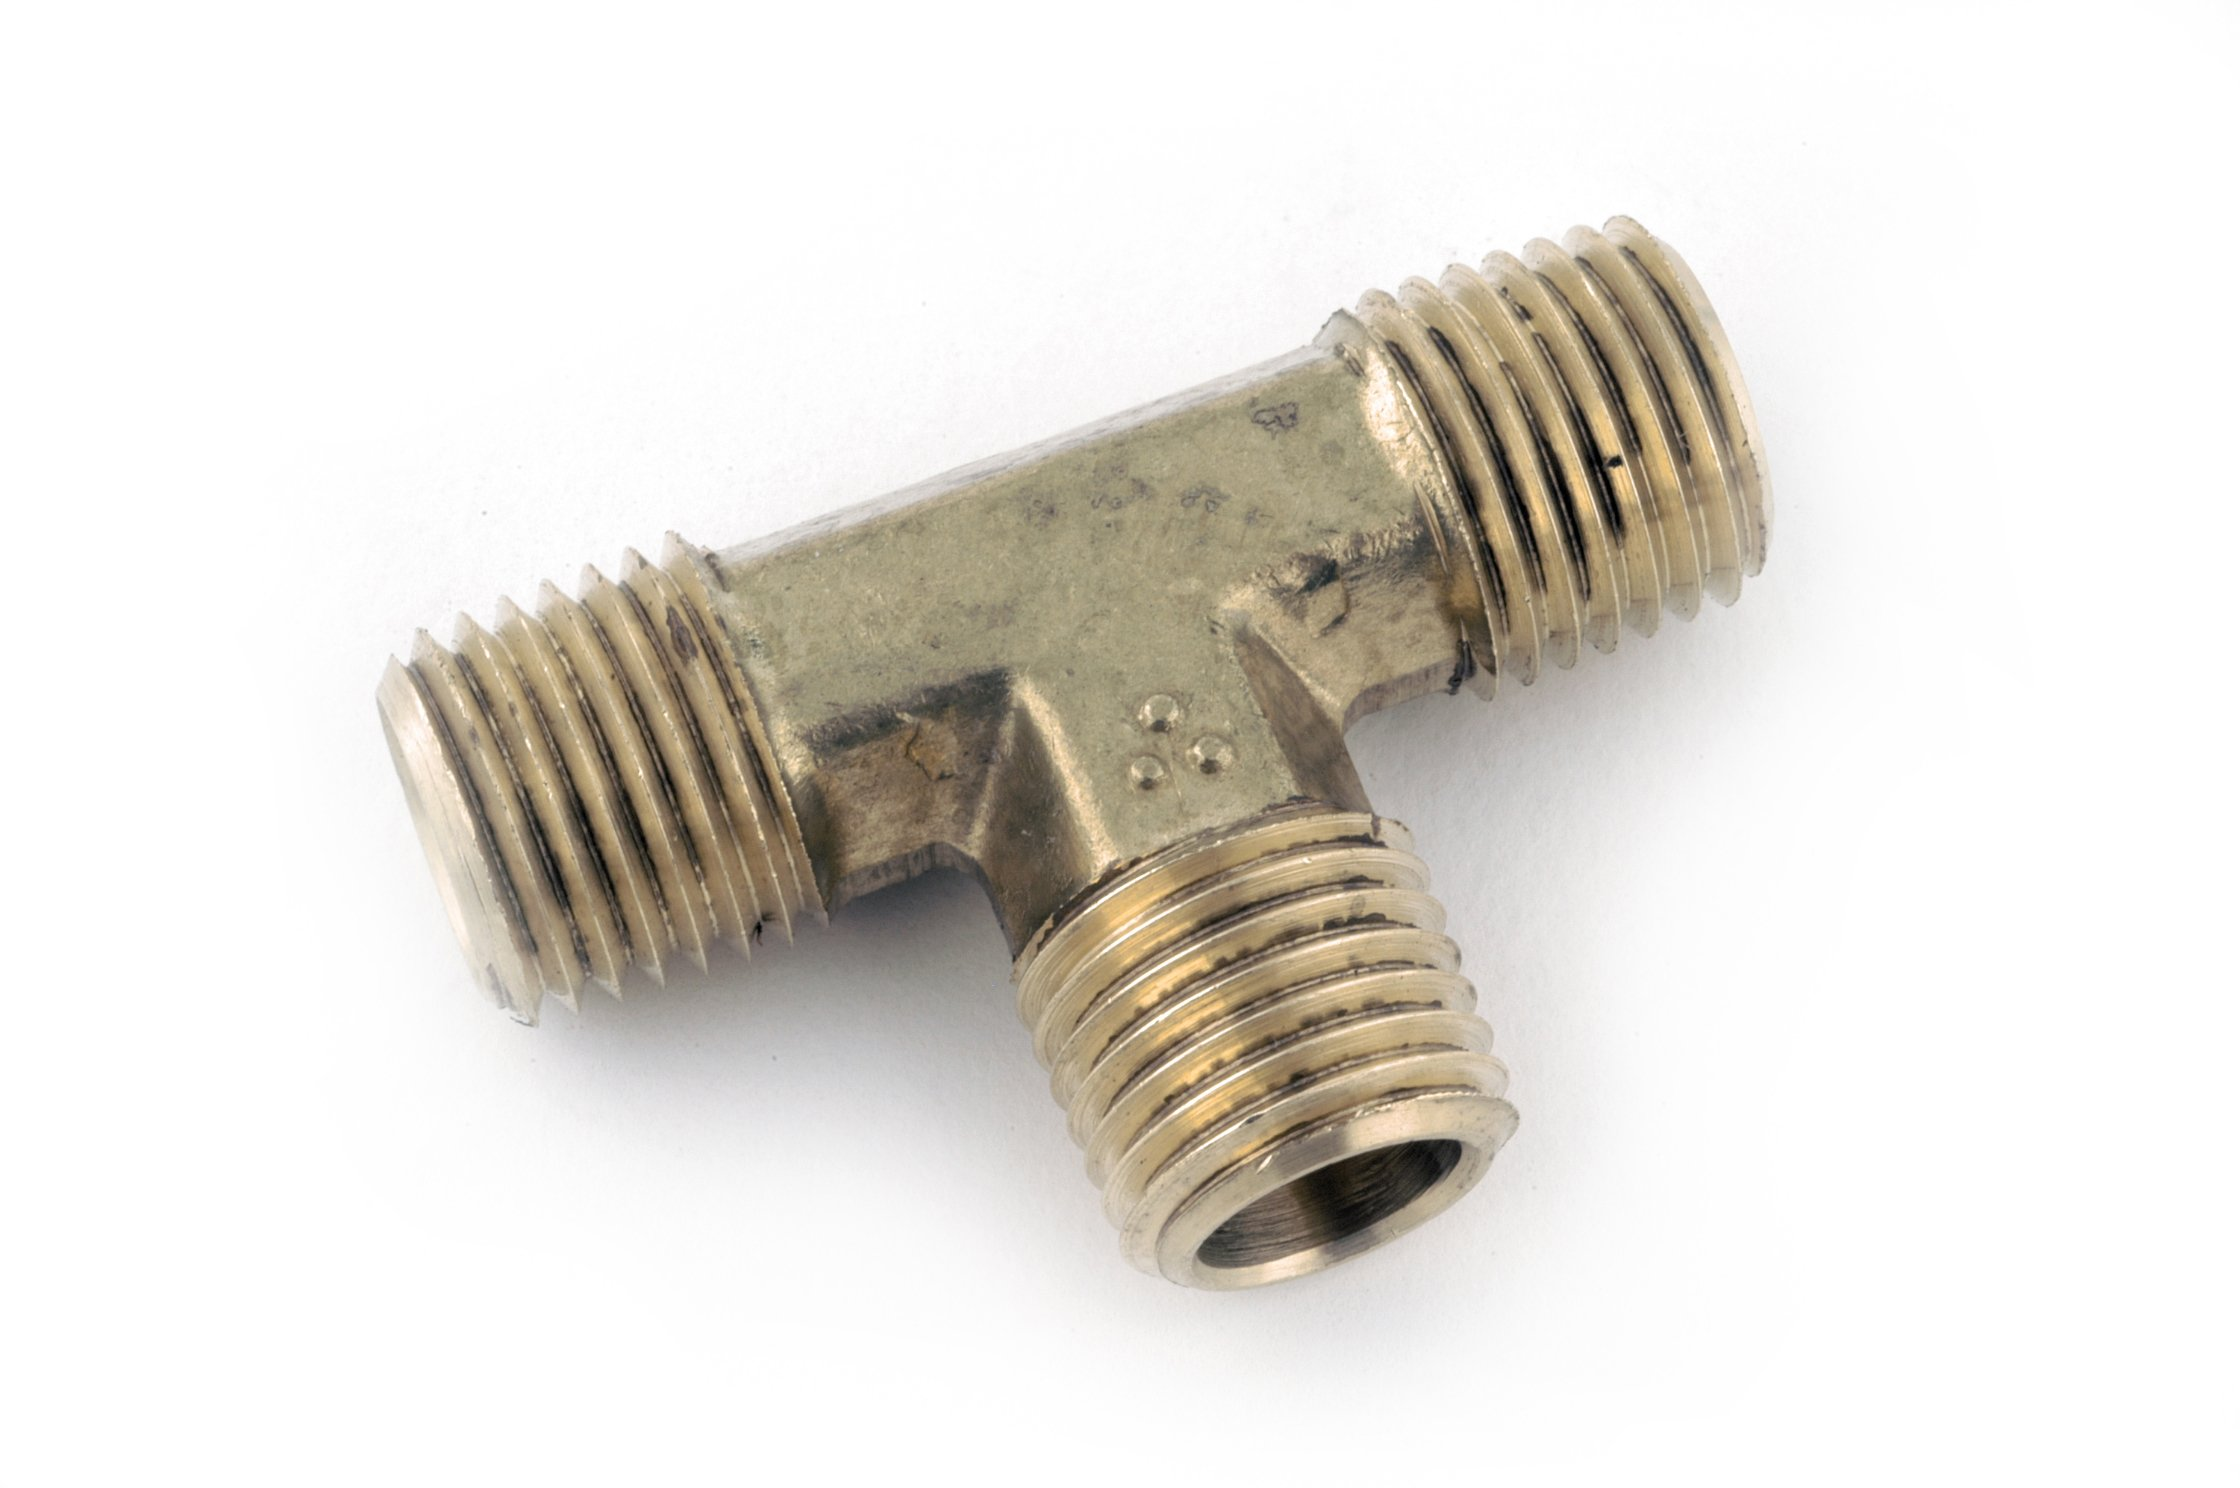 "Anderson Metals 06232 Brass Pipe Fitting, Forged Tee, 3/8"" NPT Male x 3/8"" NPT Male x 3/8"" NPT Male Pipe"